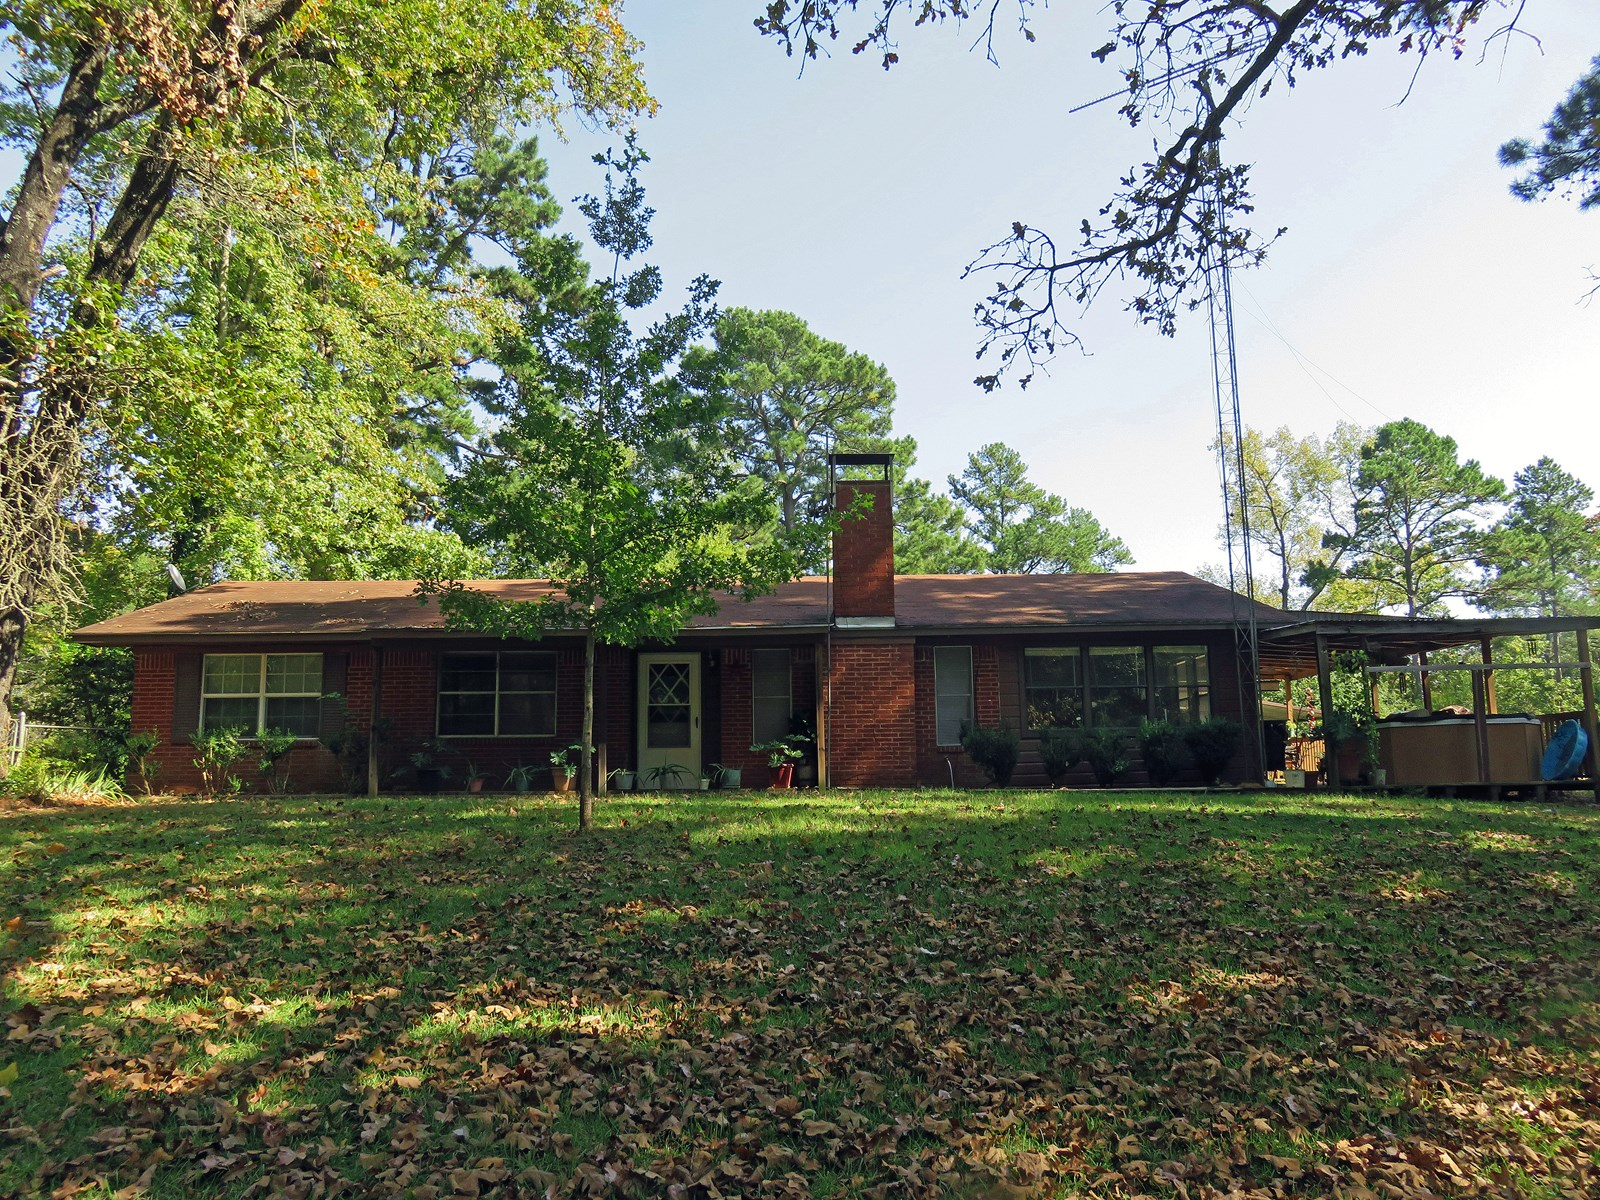 HOME ON 11 ACRES FOR SALE IN ELKHART TEXAS